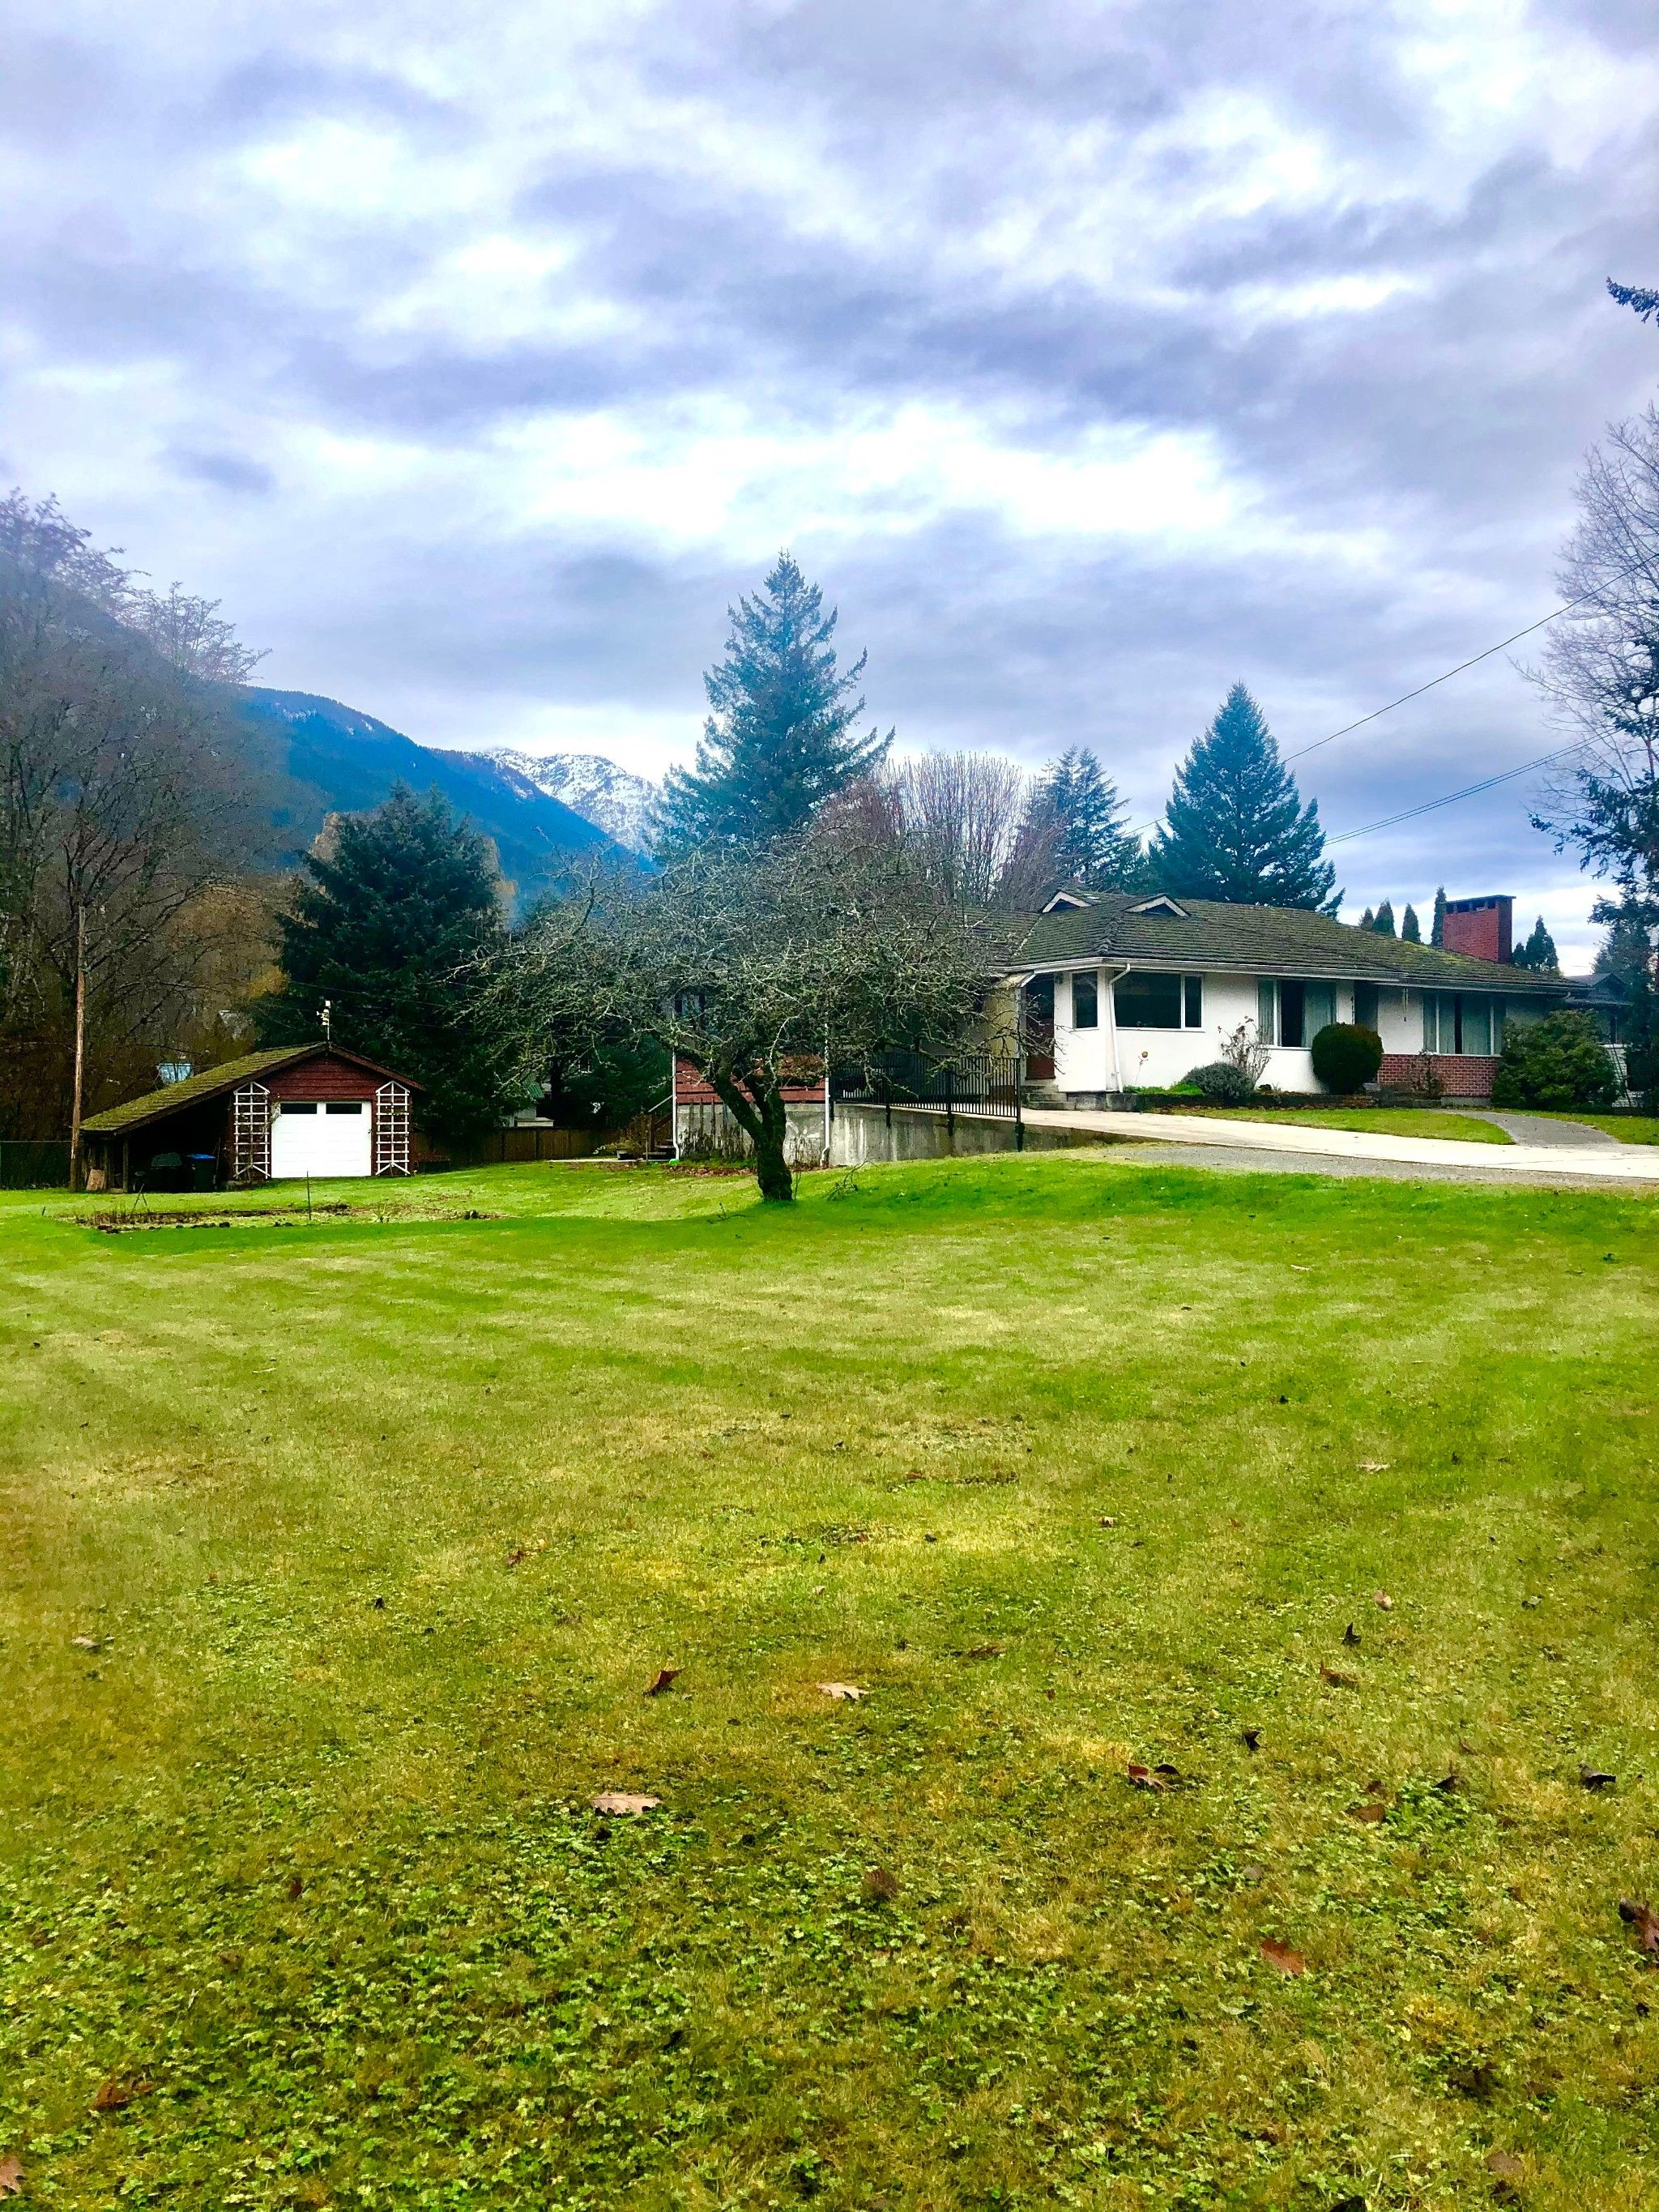 Main Photo: 41717 Governent Road in Squamish: Brackendale House for sale : MLS®# R2513183